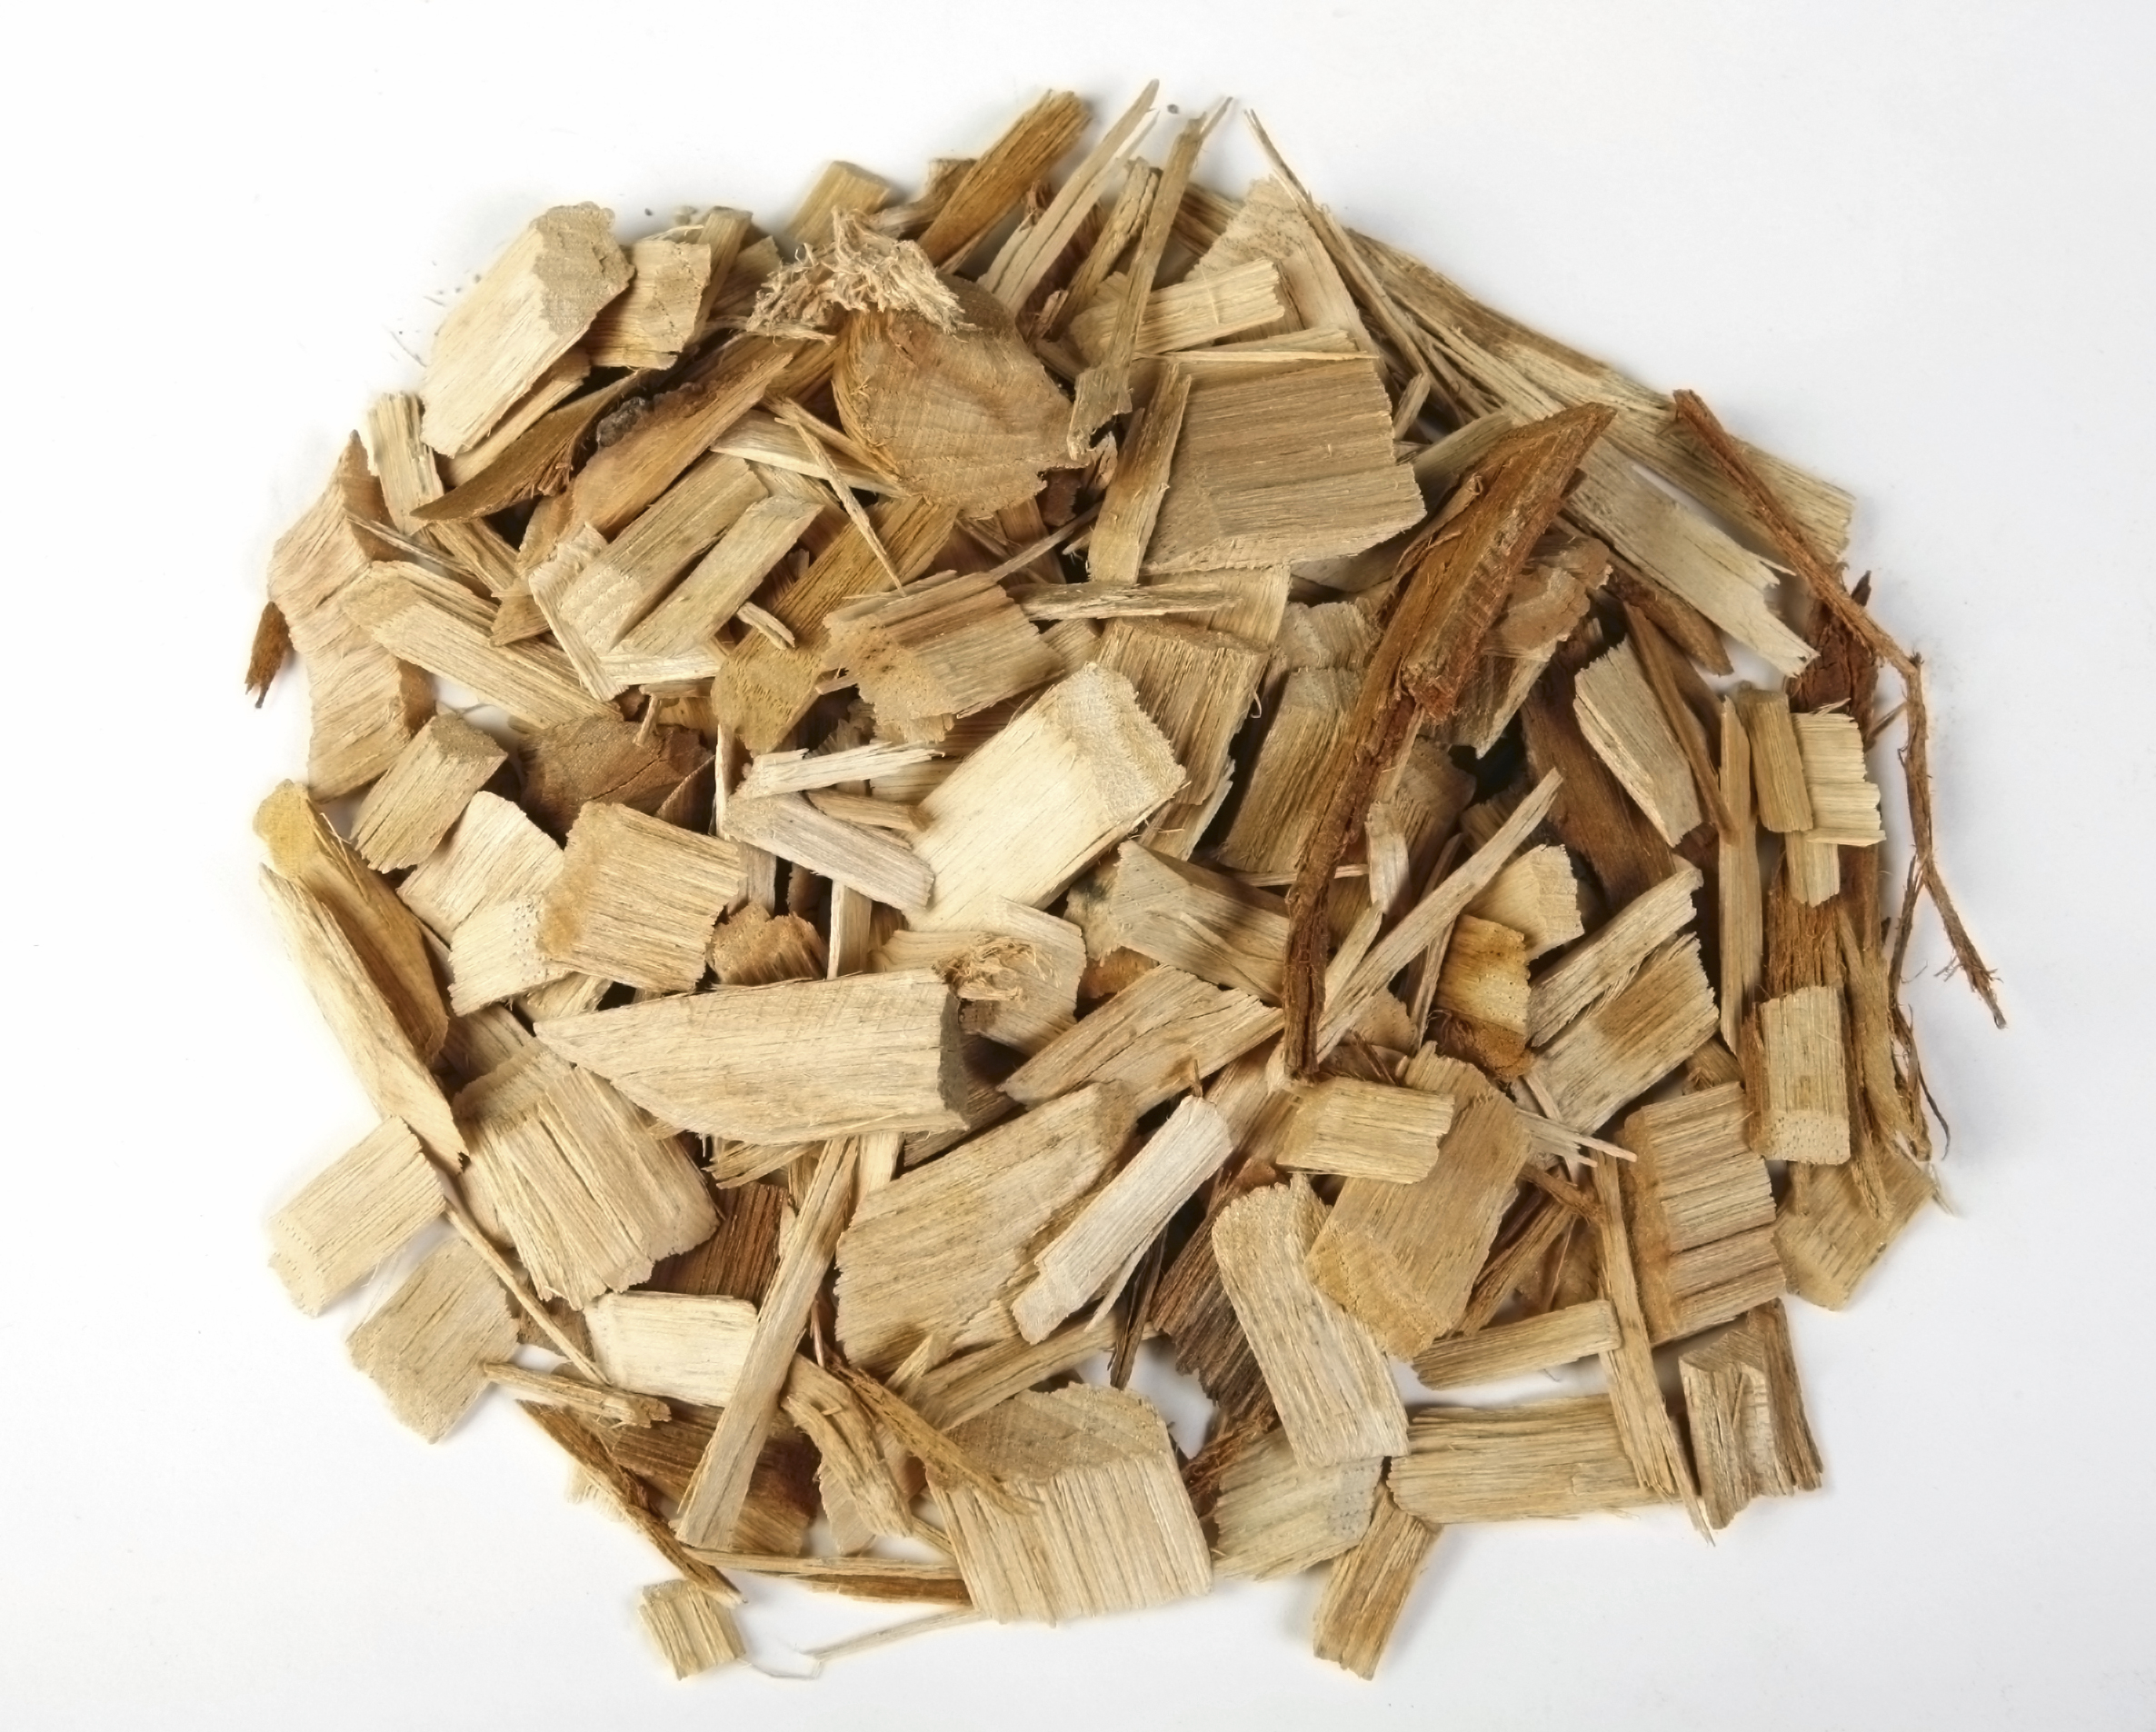 Bipartisan Legislation Promotes Broader use of Biomass to Produce Renewable Fuels